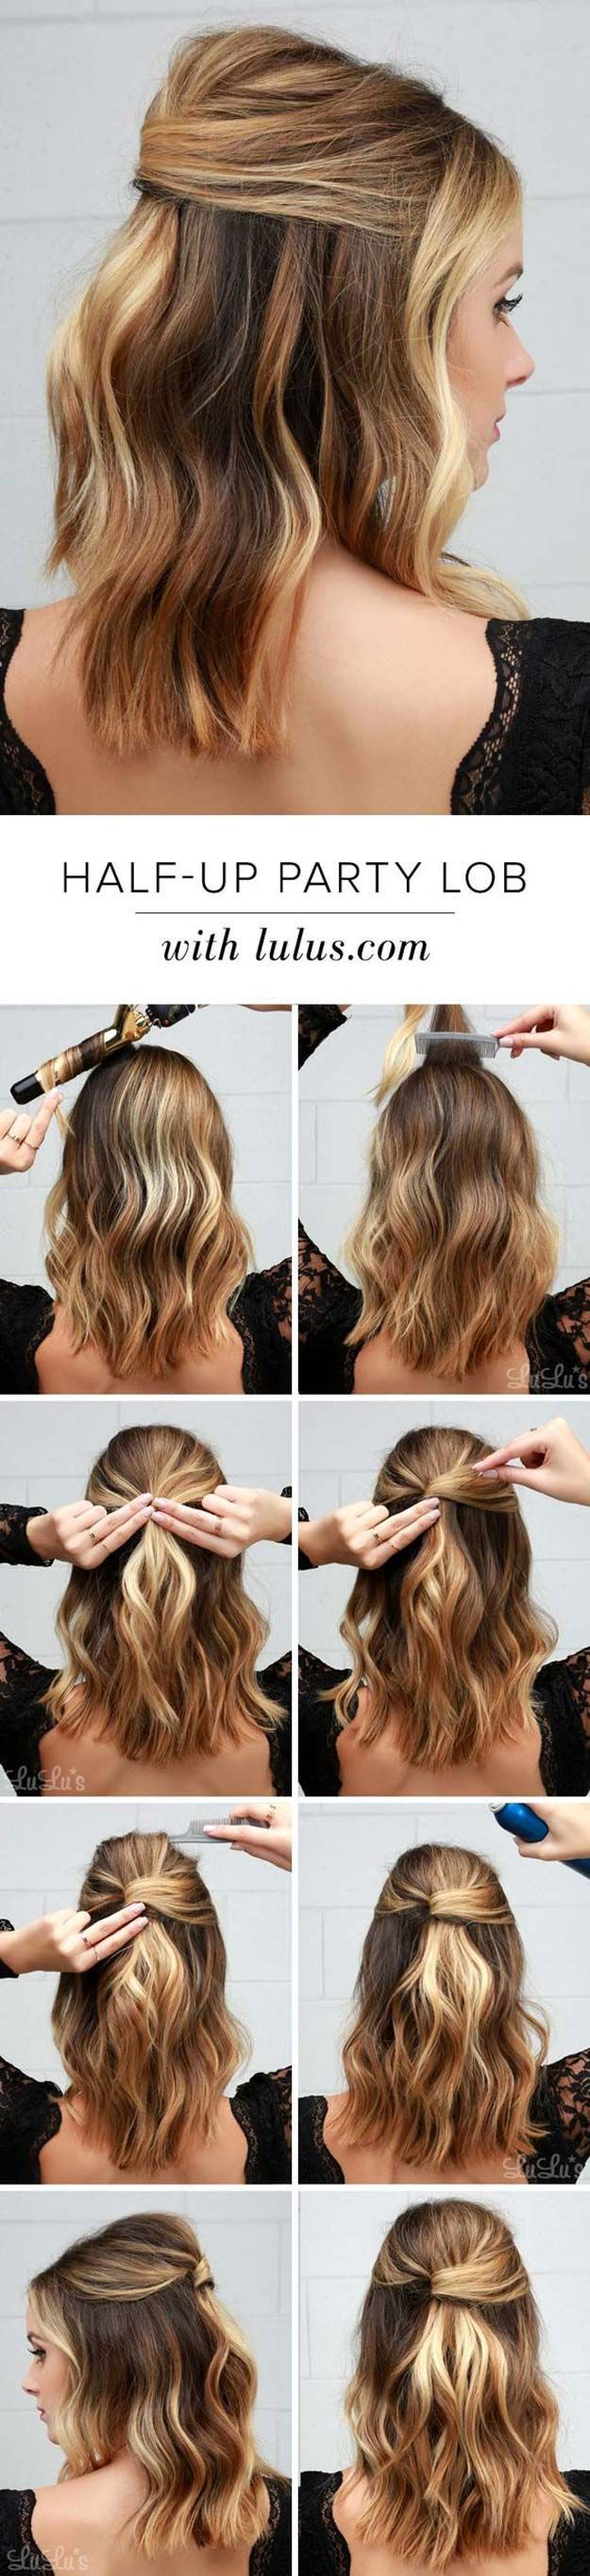 Cool And Easy Diy Hairstyles Half Party Lob Quick And Easy Ideas For Back Toa Hair Styles Long Hair Styles Diy Hairstyles Easy